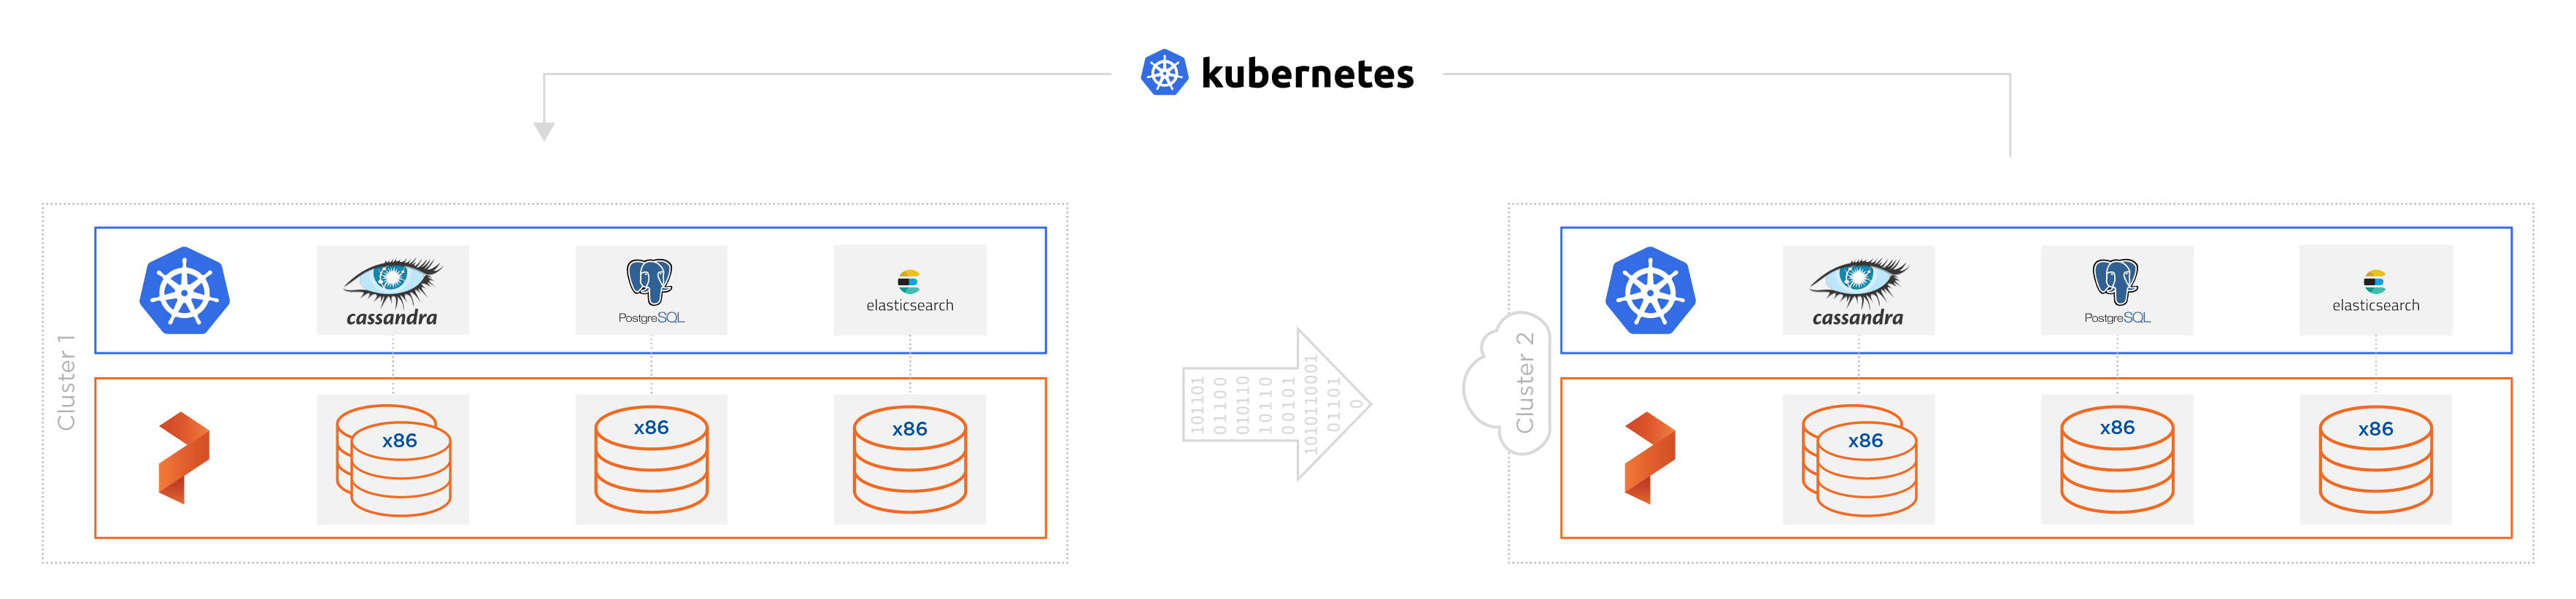 With PX-Data Management gives you control over your Kubernetes data no matter where it lives.